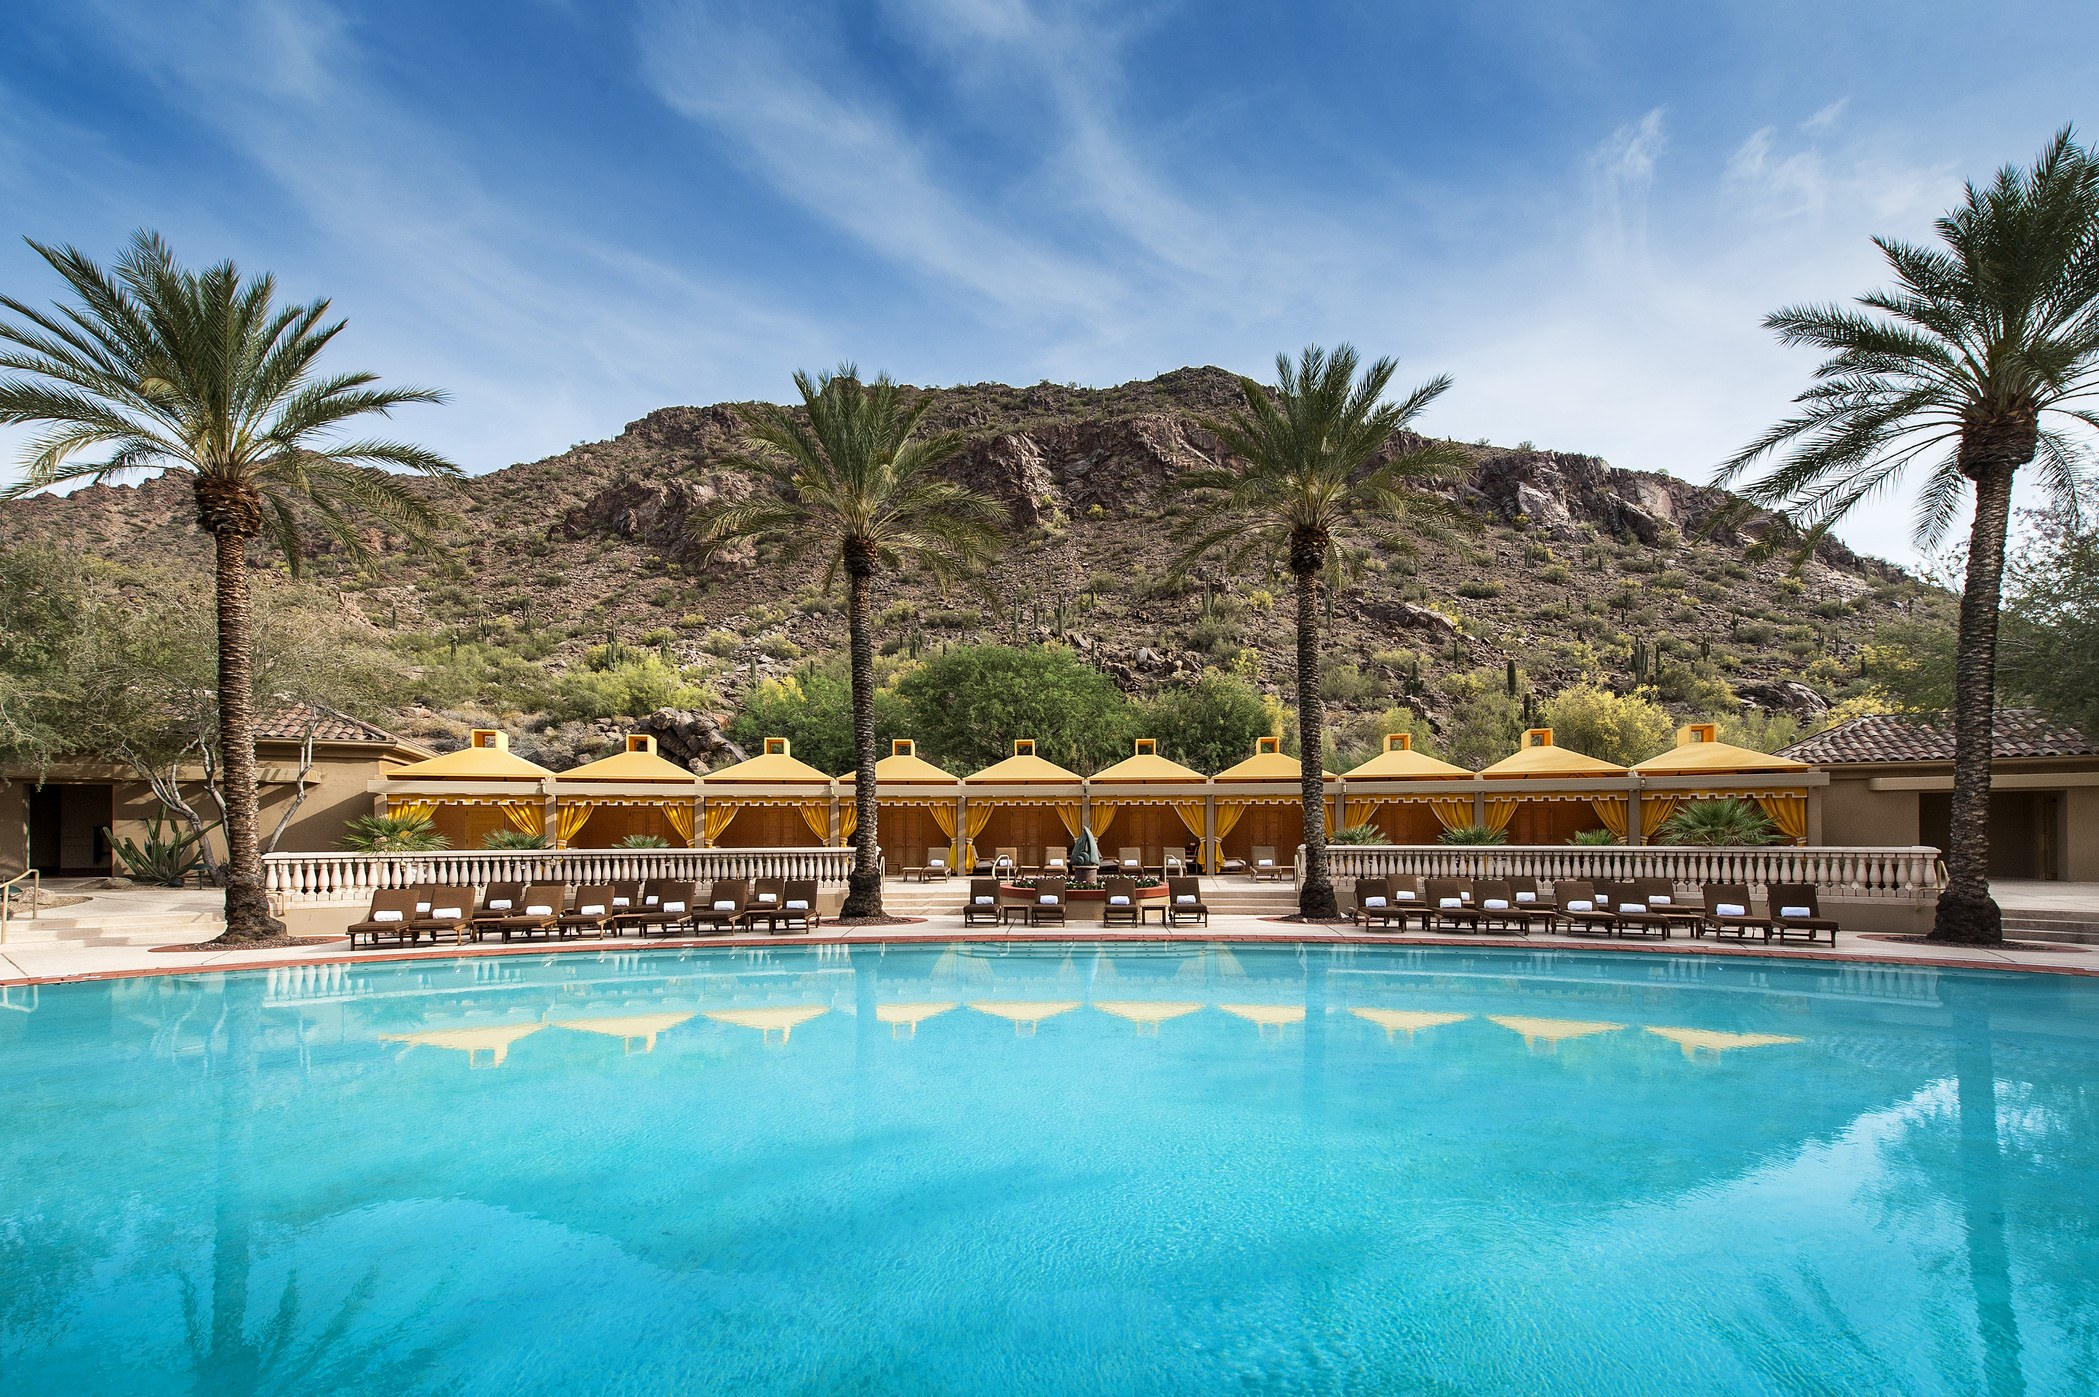 large circular pool at luxury hotel surrounded by palm trees and yellow cabanas